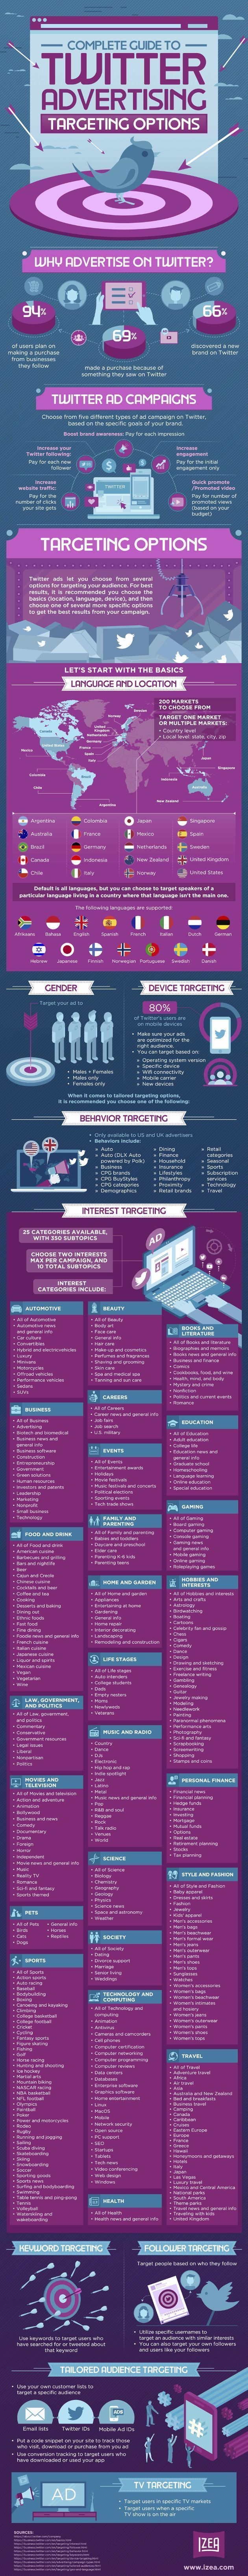 The Complete Guide to Twitter Advertising Targeting Options [Infographic]